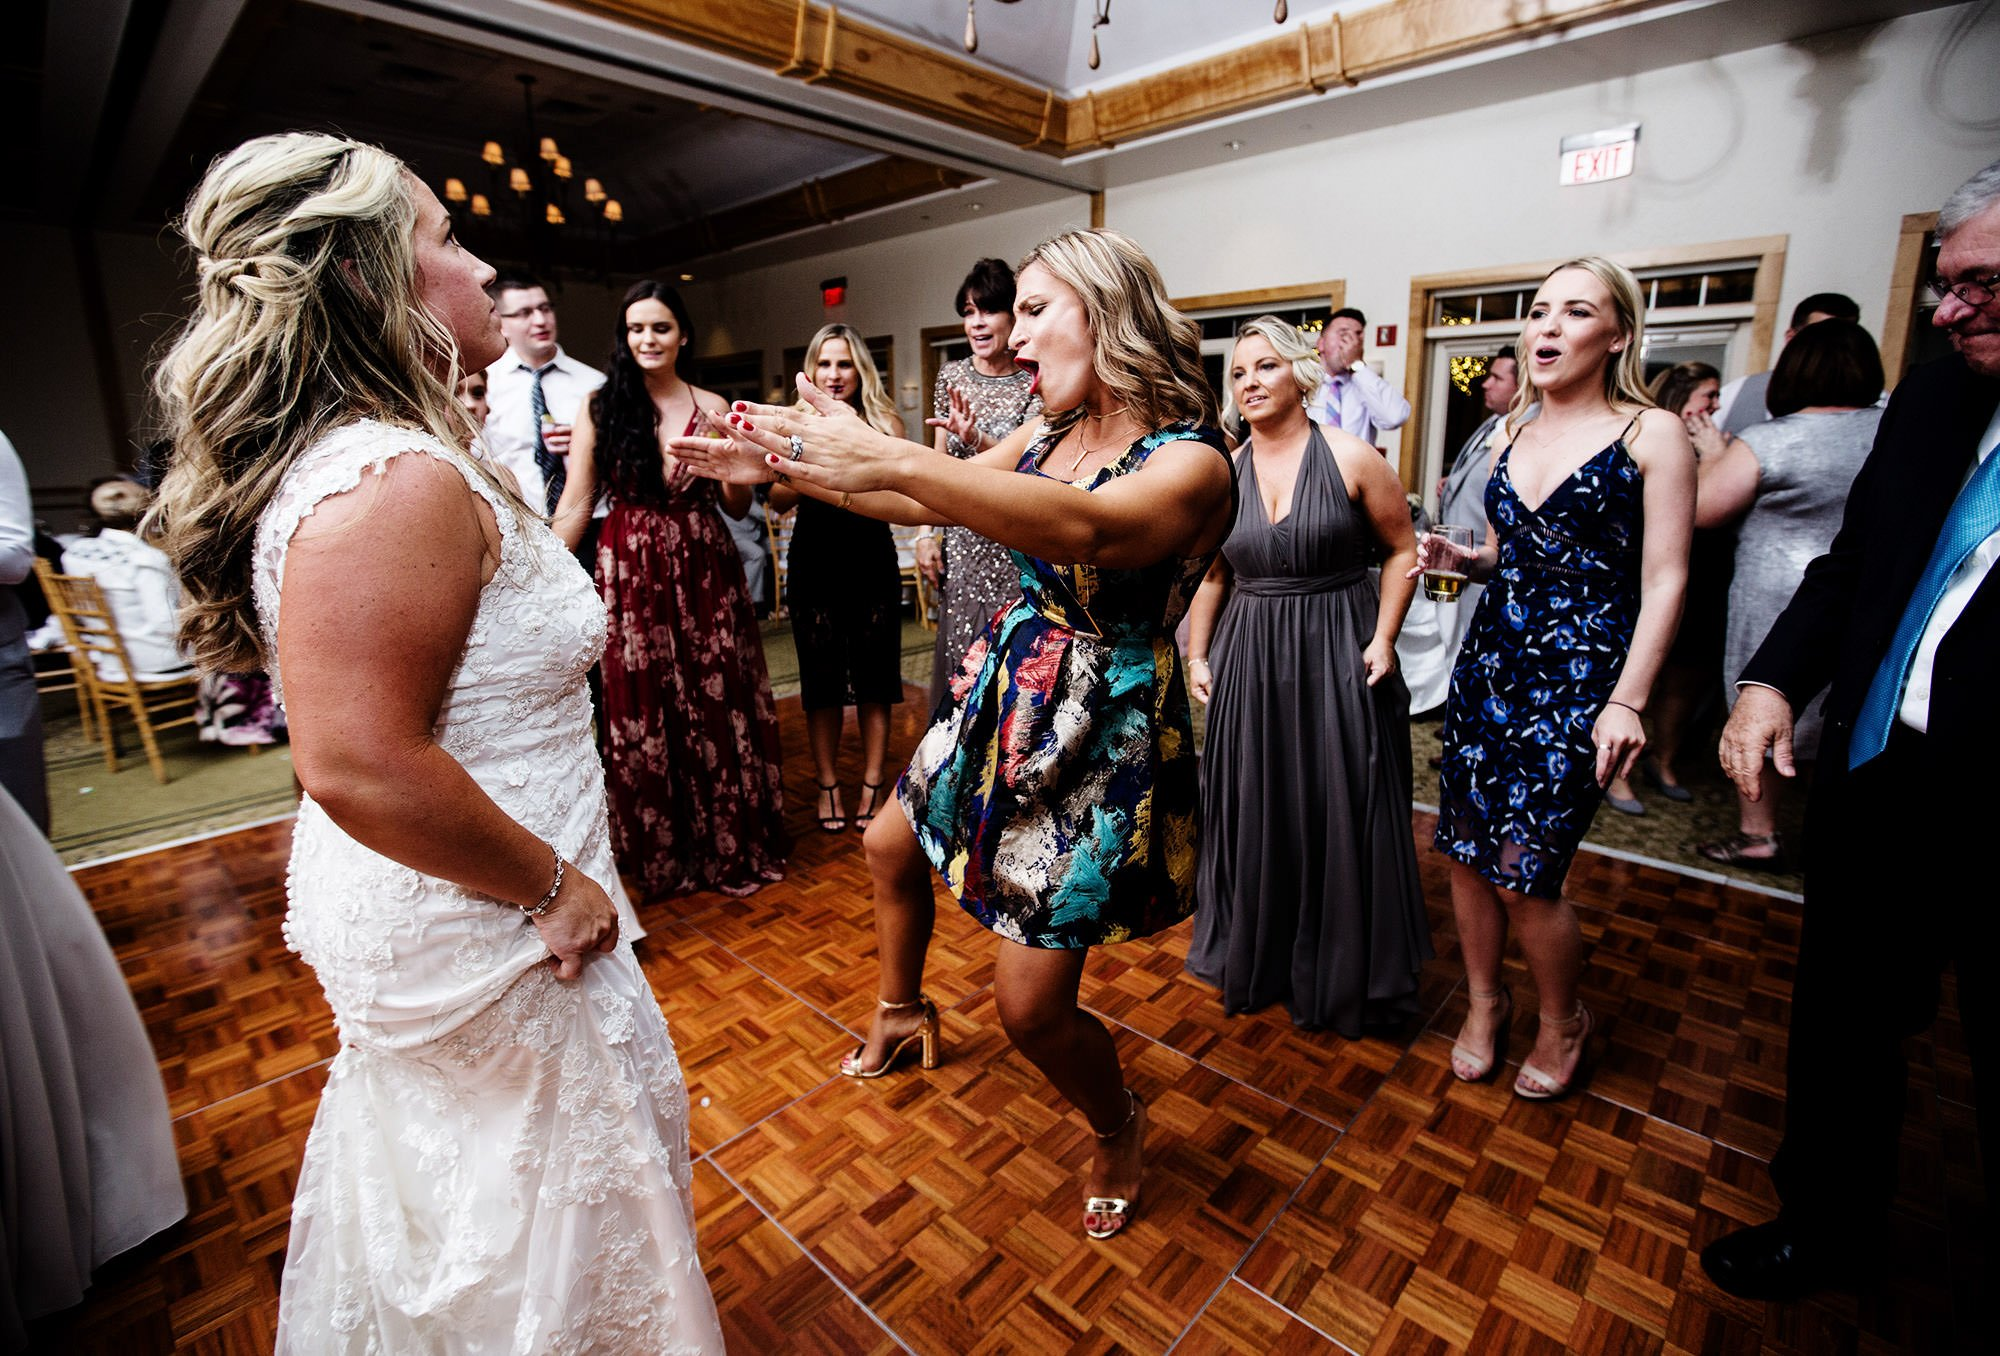 Guests dance and enjoy the reception at Wequassett Resort.